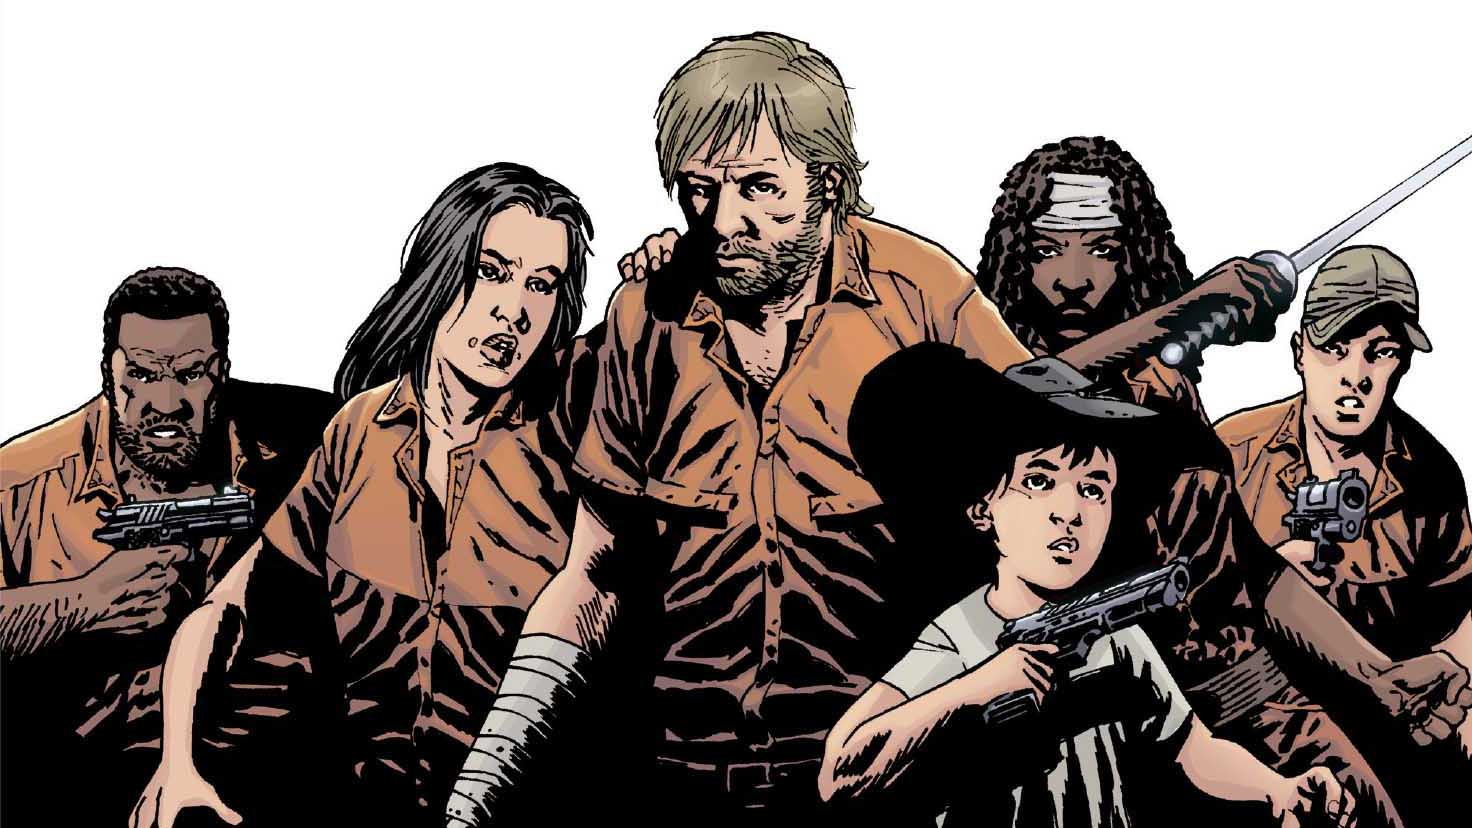 The Walking Dead: Compendium One by Robert Kirkman